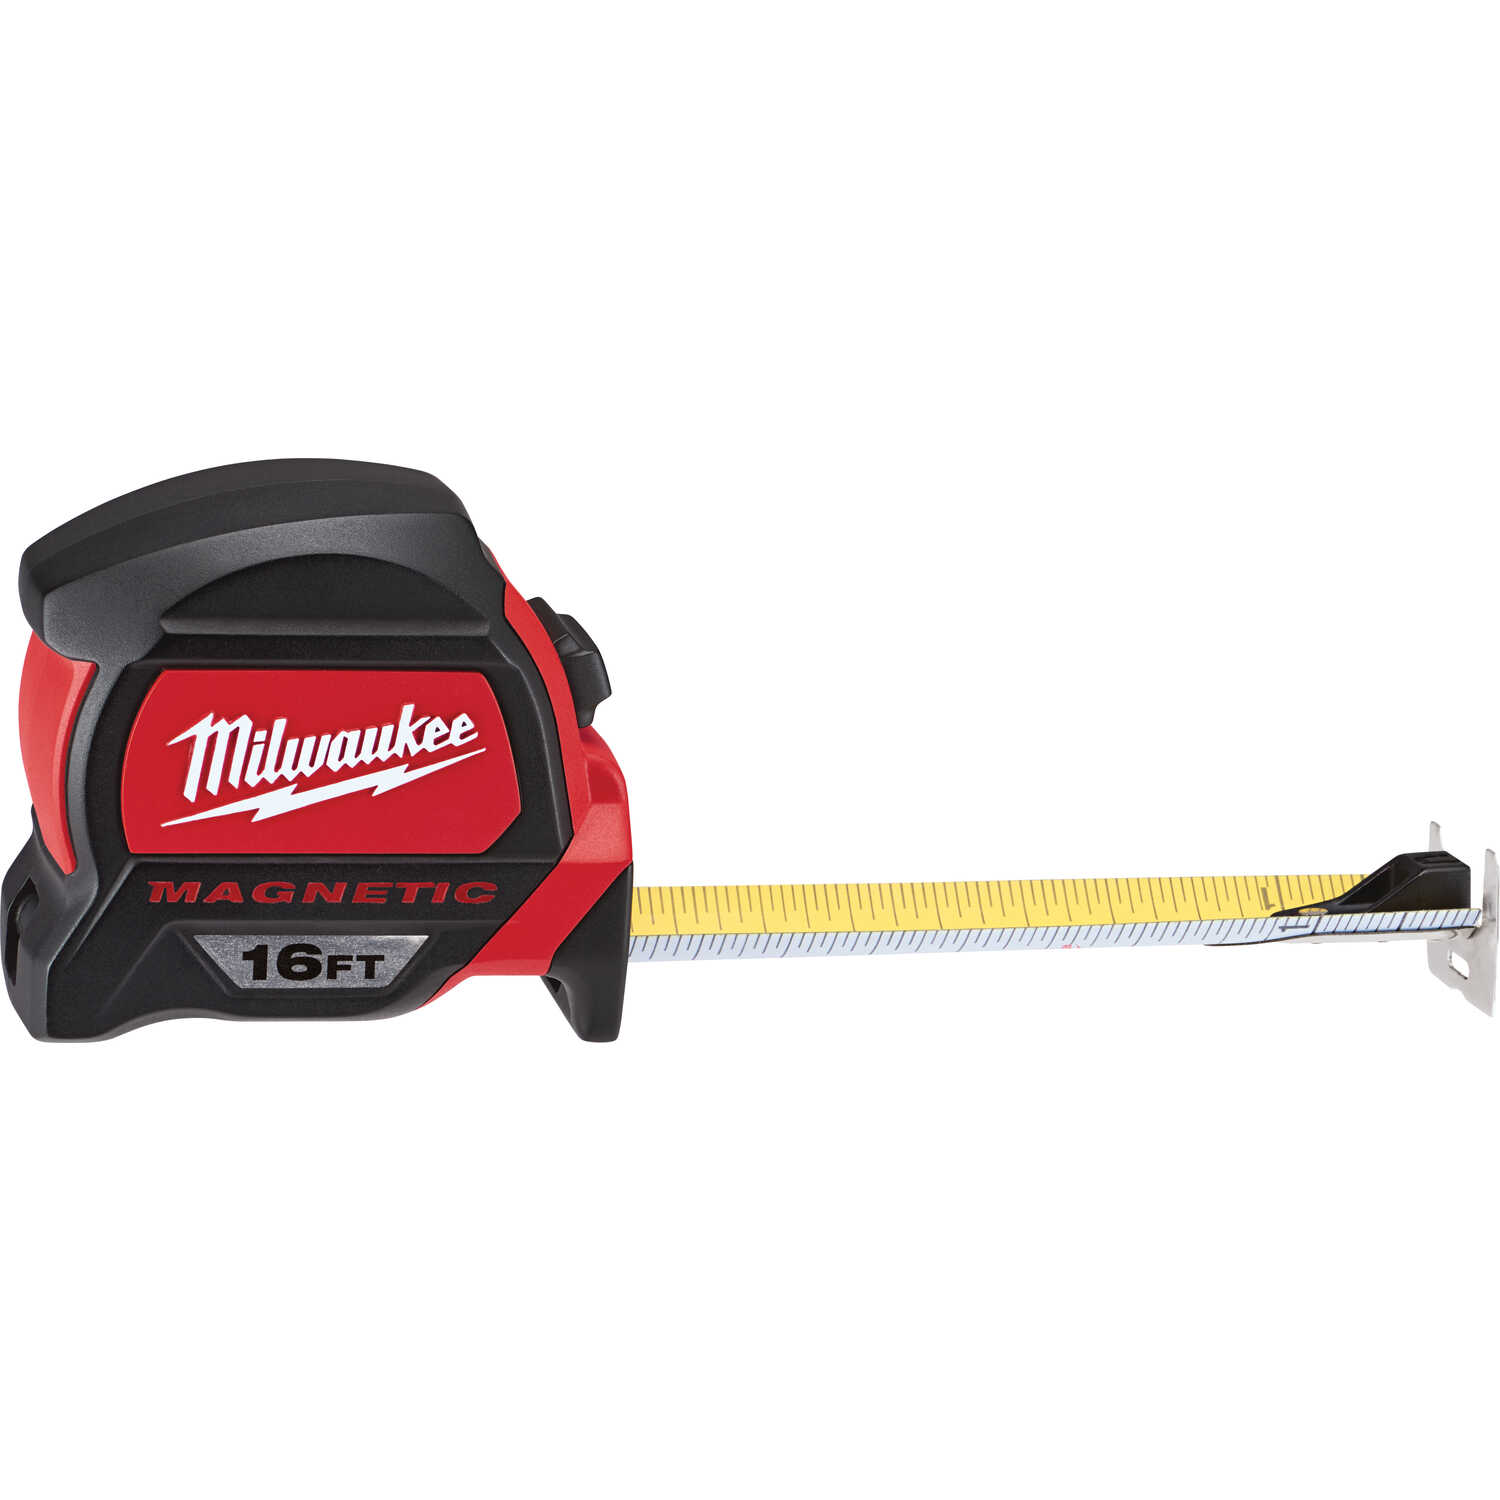 Milwaukee 16 Ft L Red Black Magnetic Tape Measure Ace Hardware